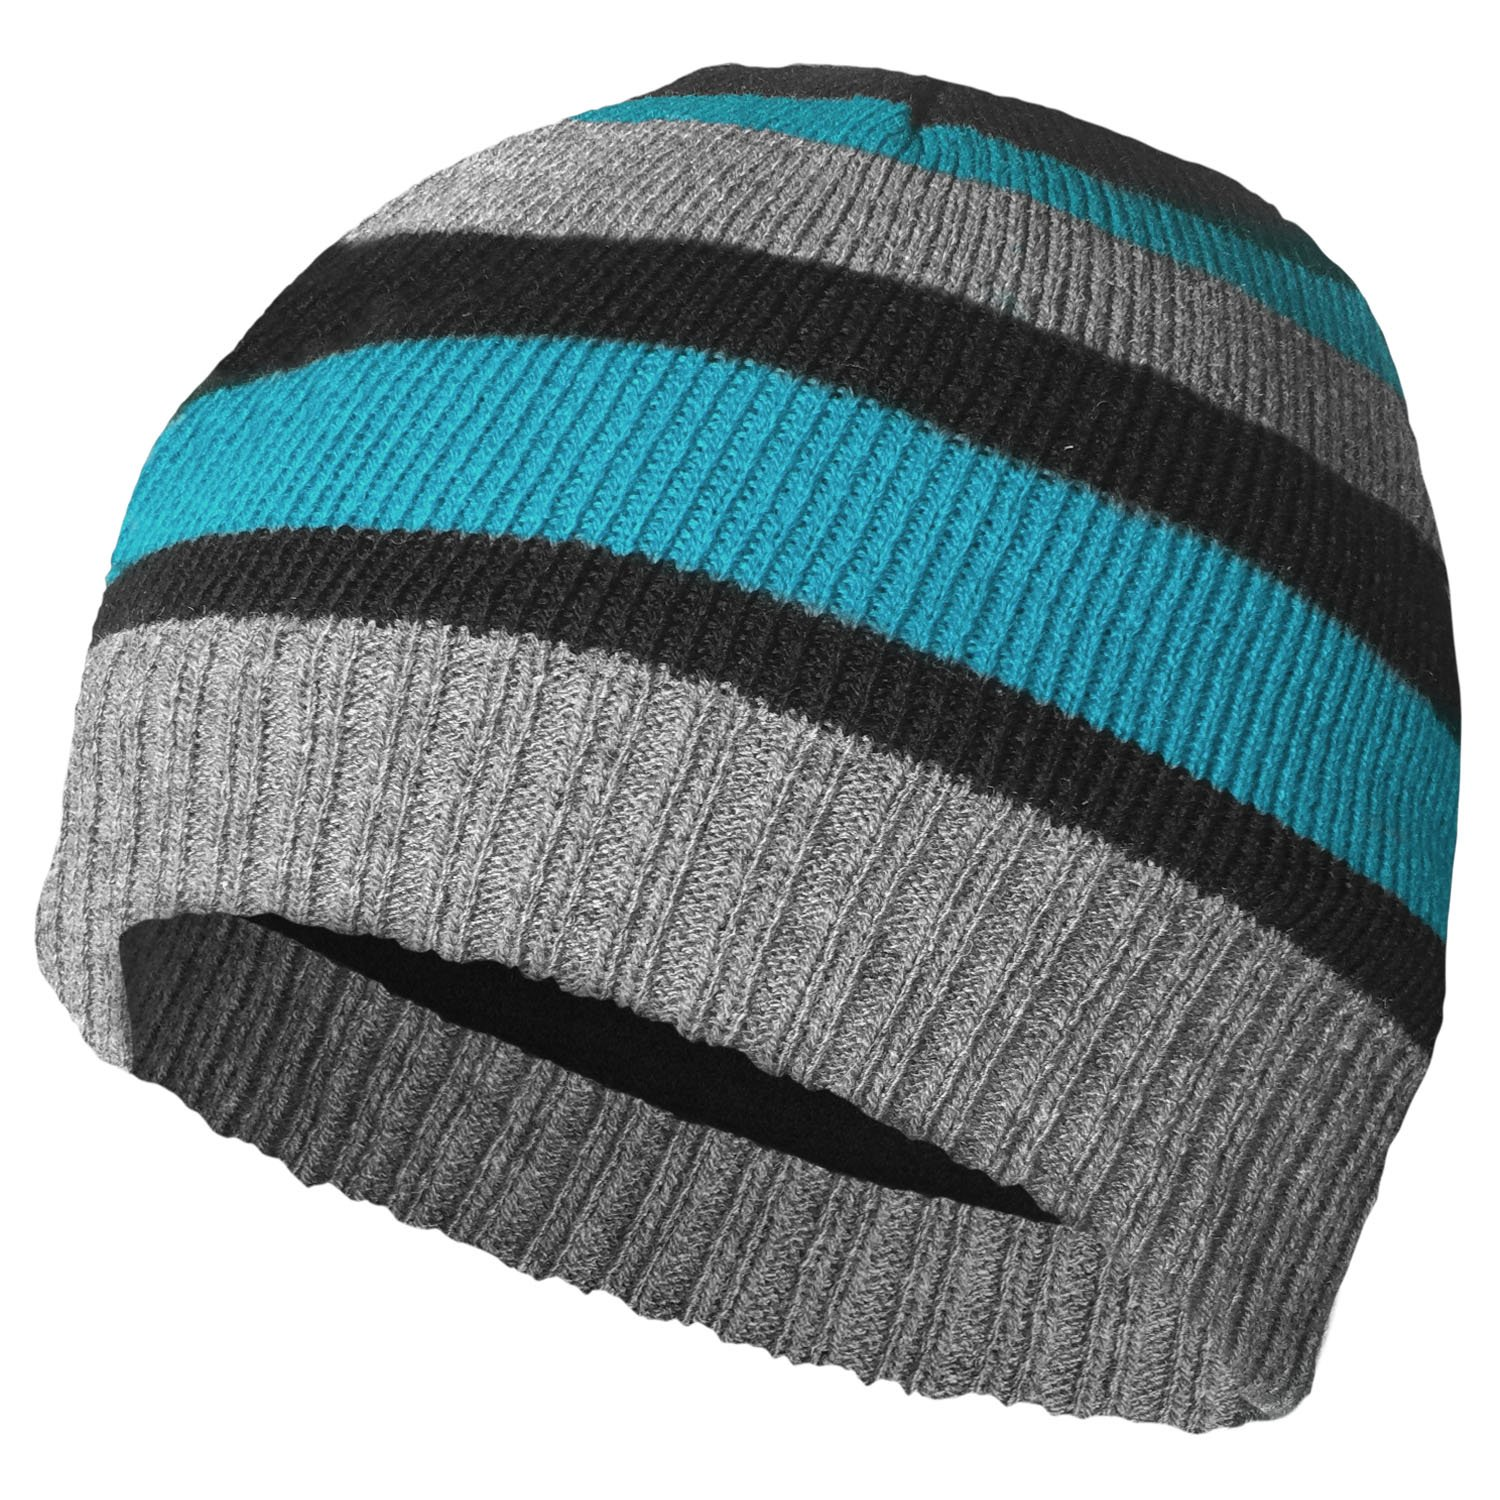 BOYS THINSULATE LINED KNITTED STRIPED BEANIE HAT